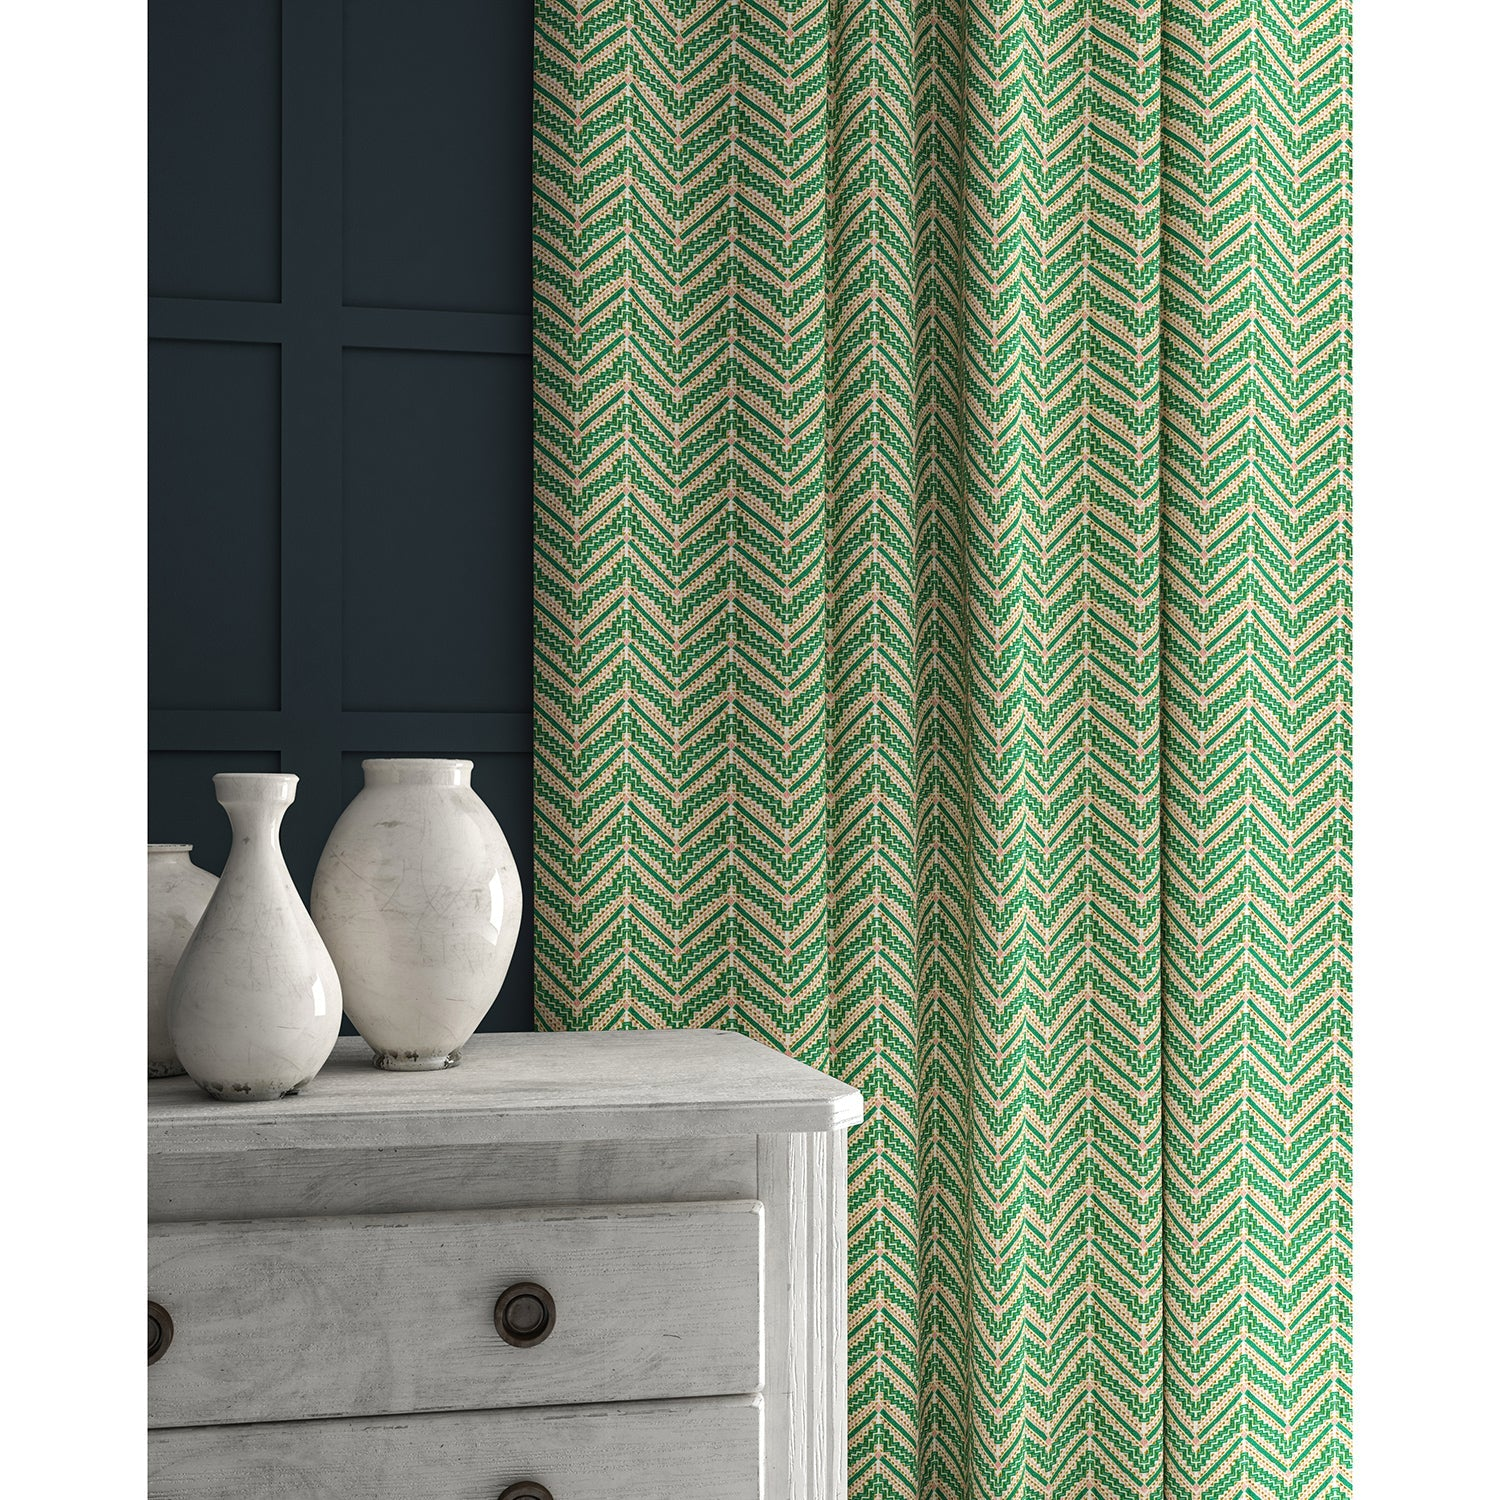 Curtains in a bright green coloured zig zag geometric weave fabric